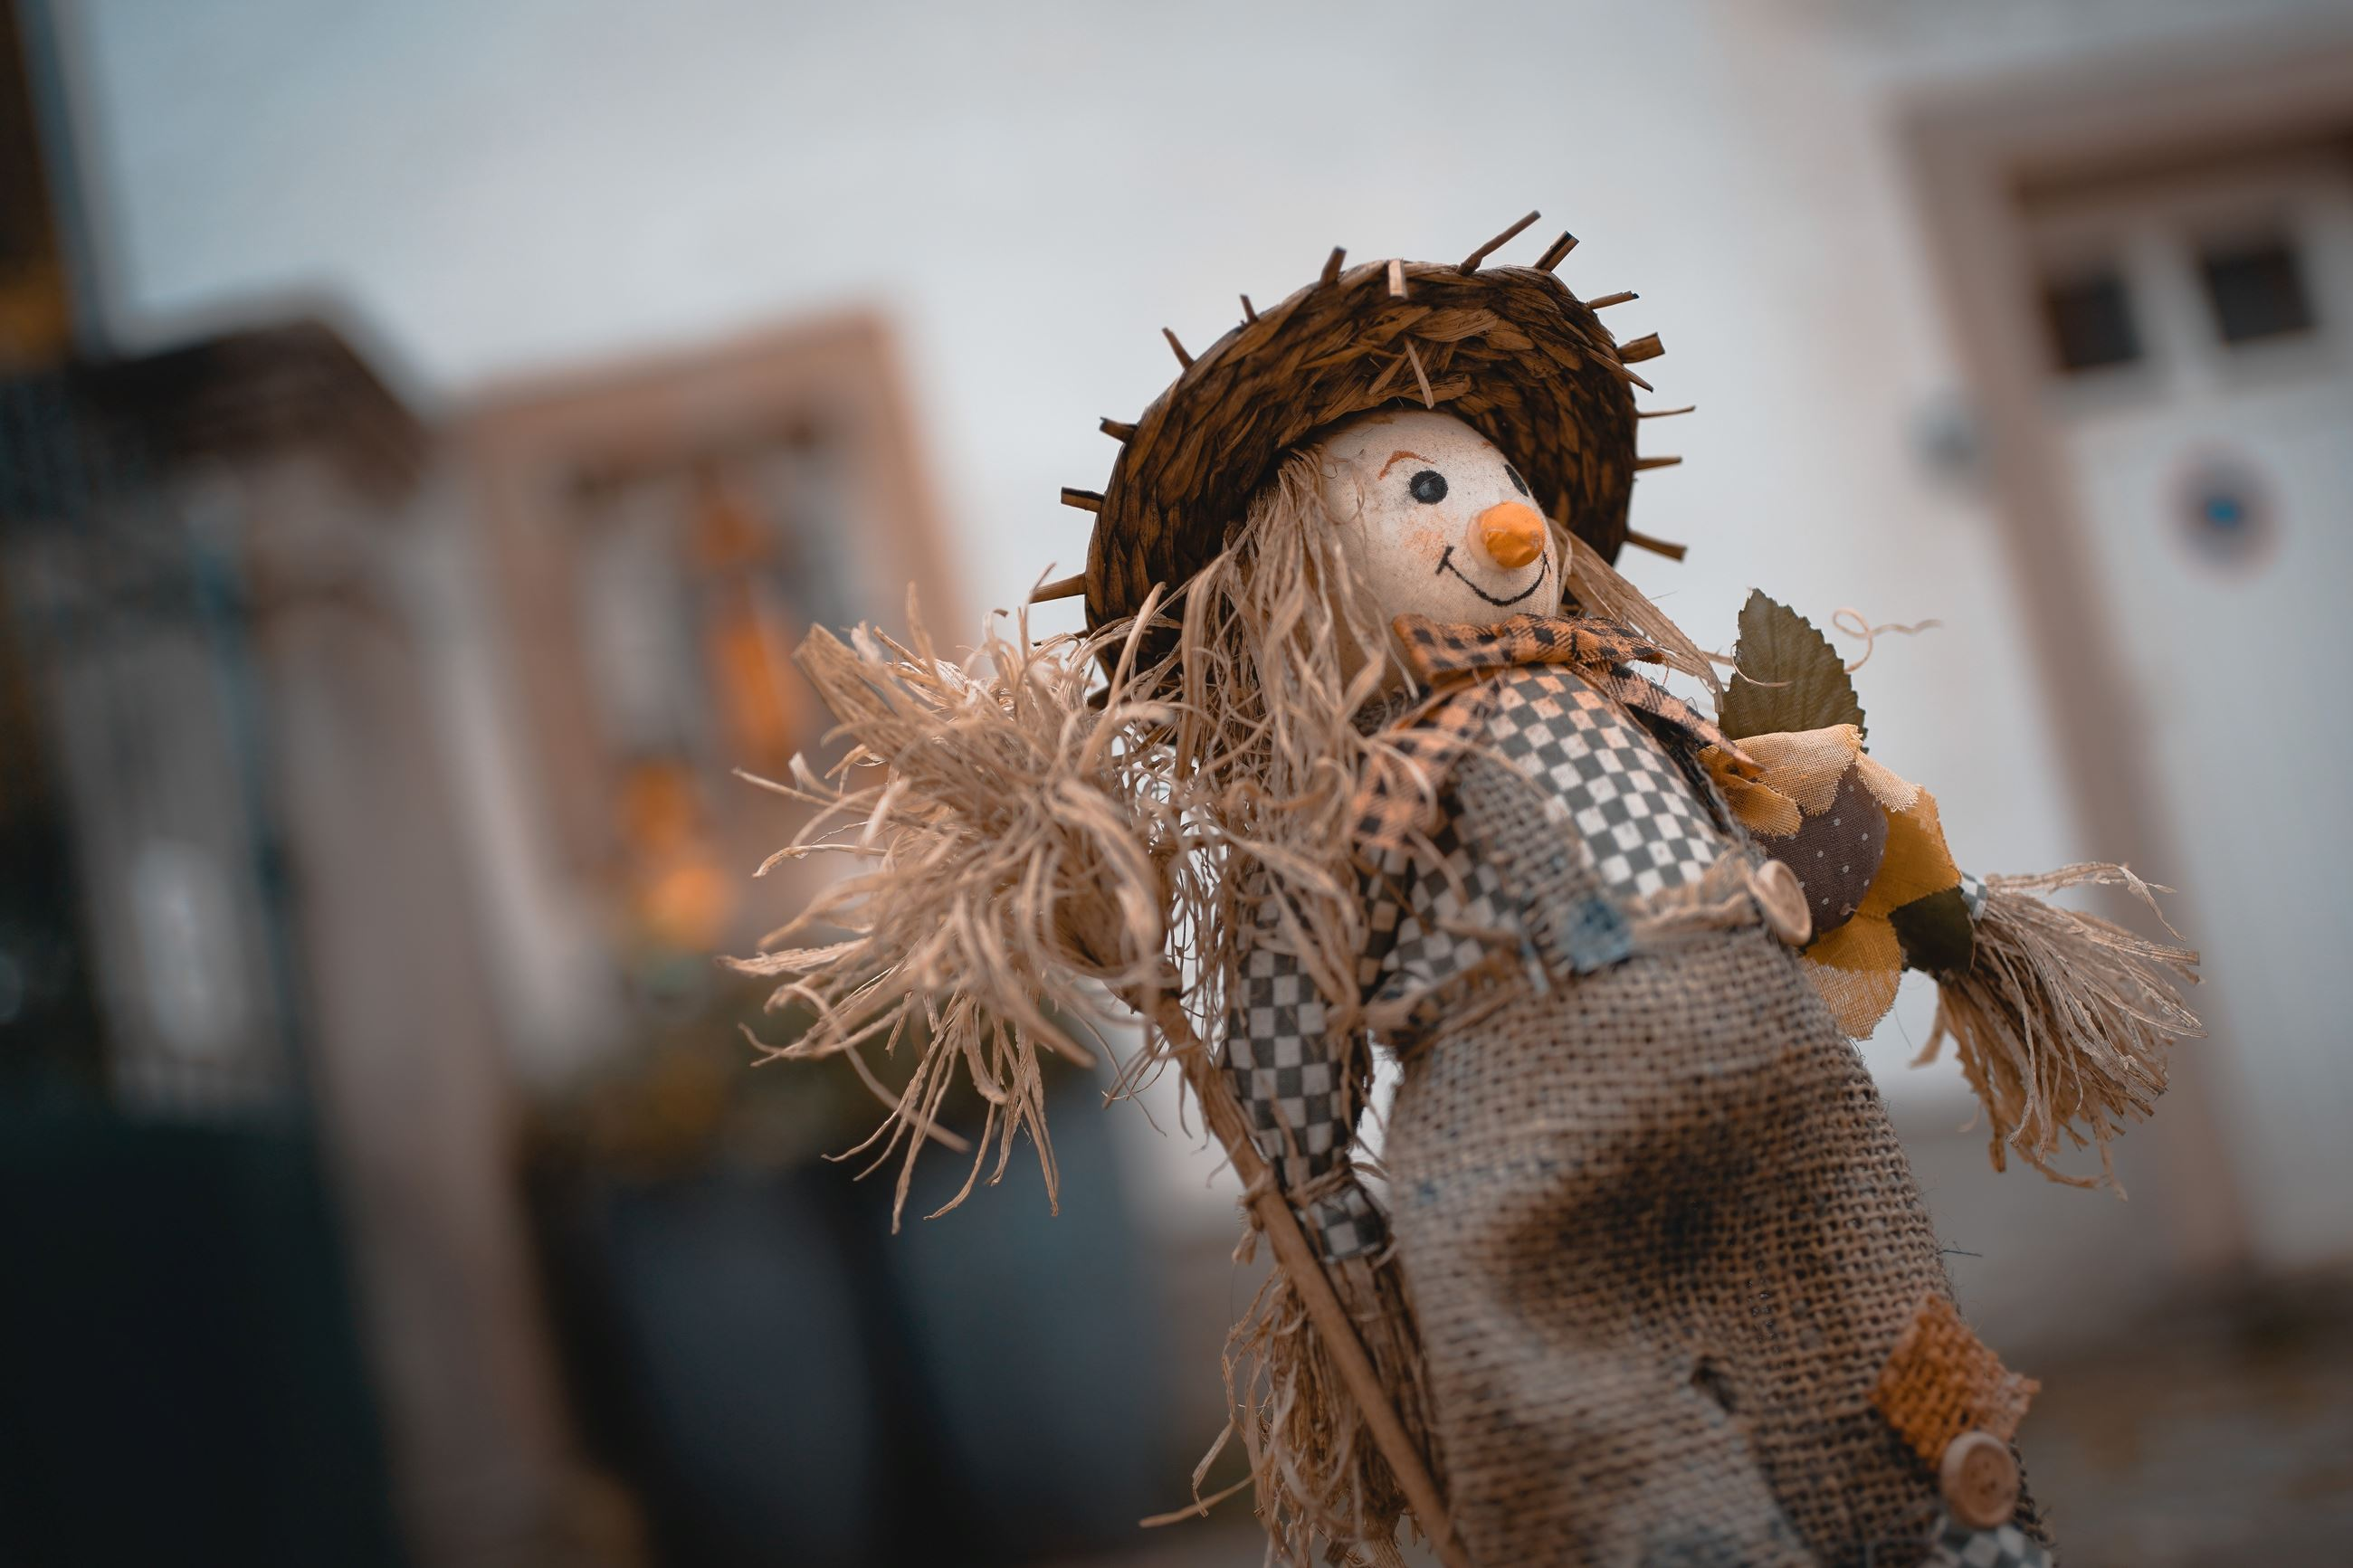 A photograph of a cute scarecrow